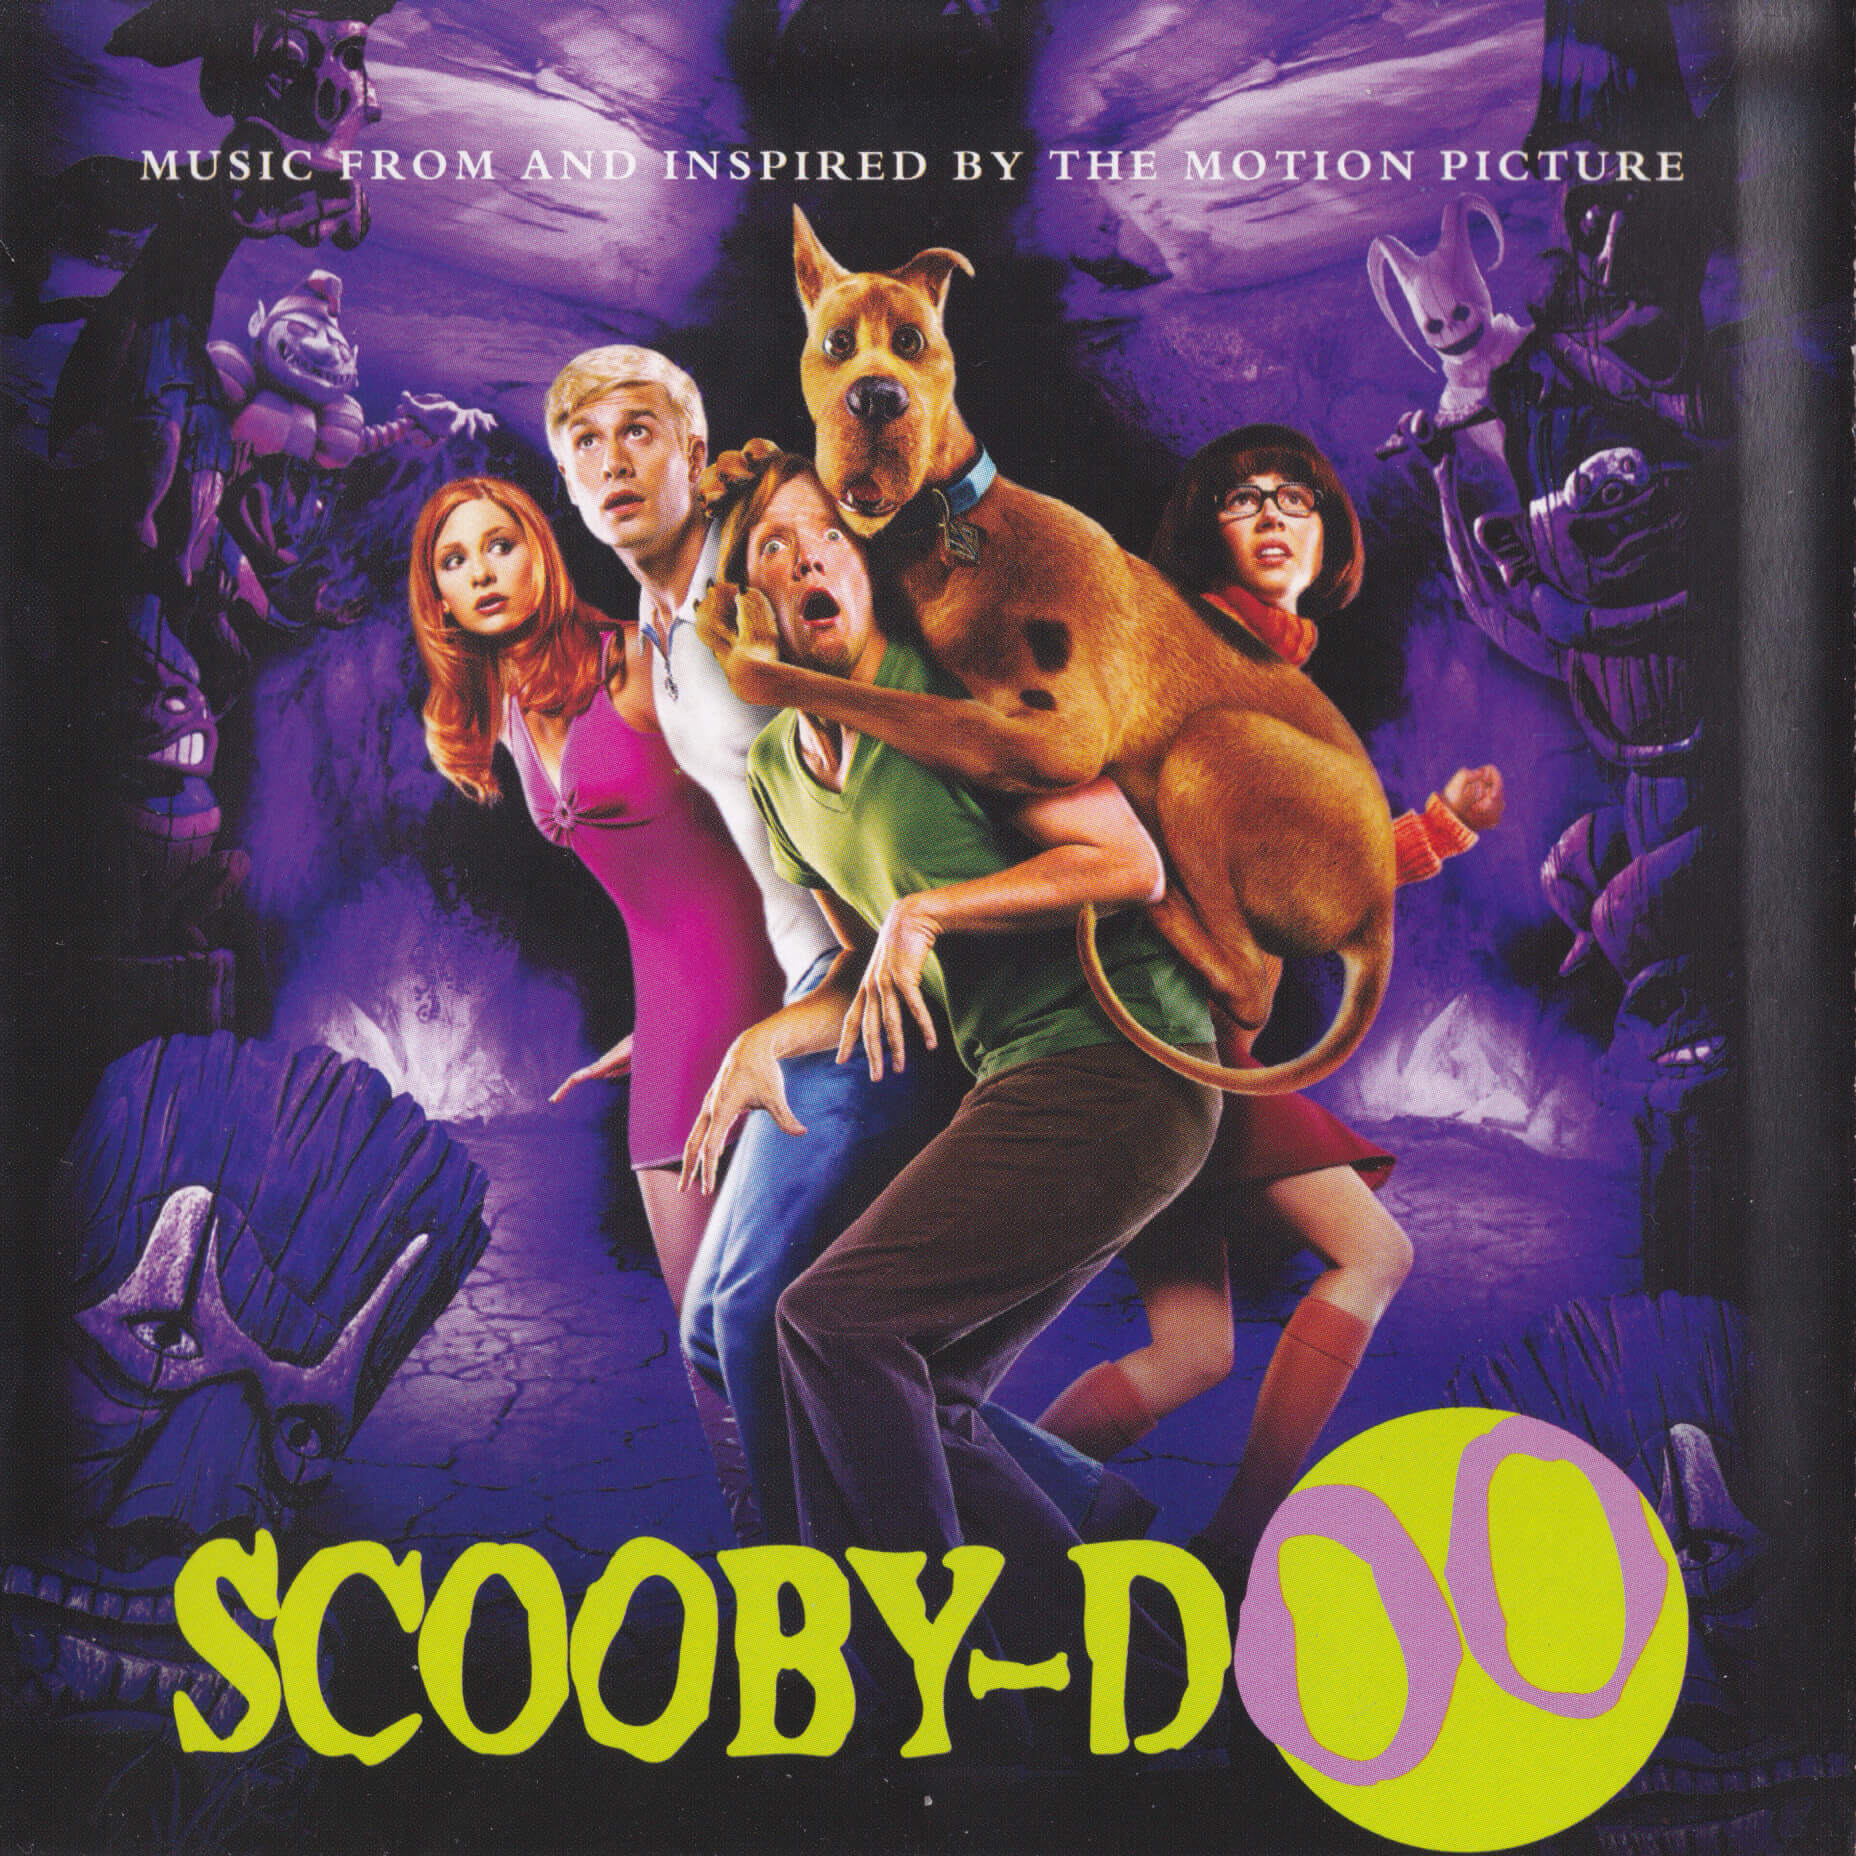 SCOOBY DOO halloween movie